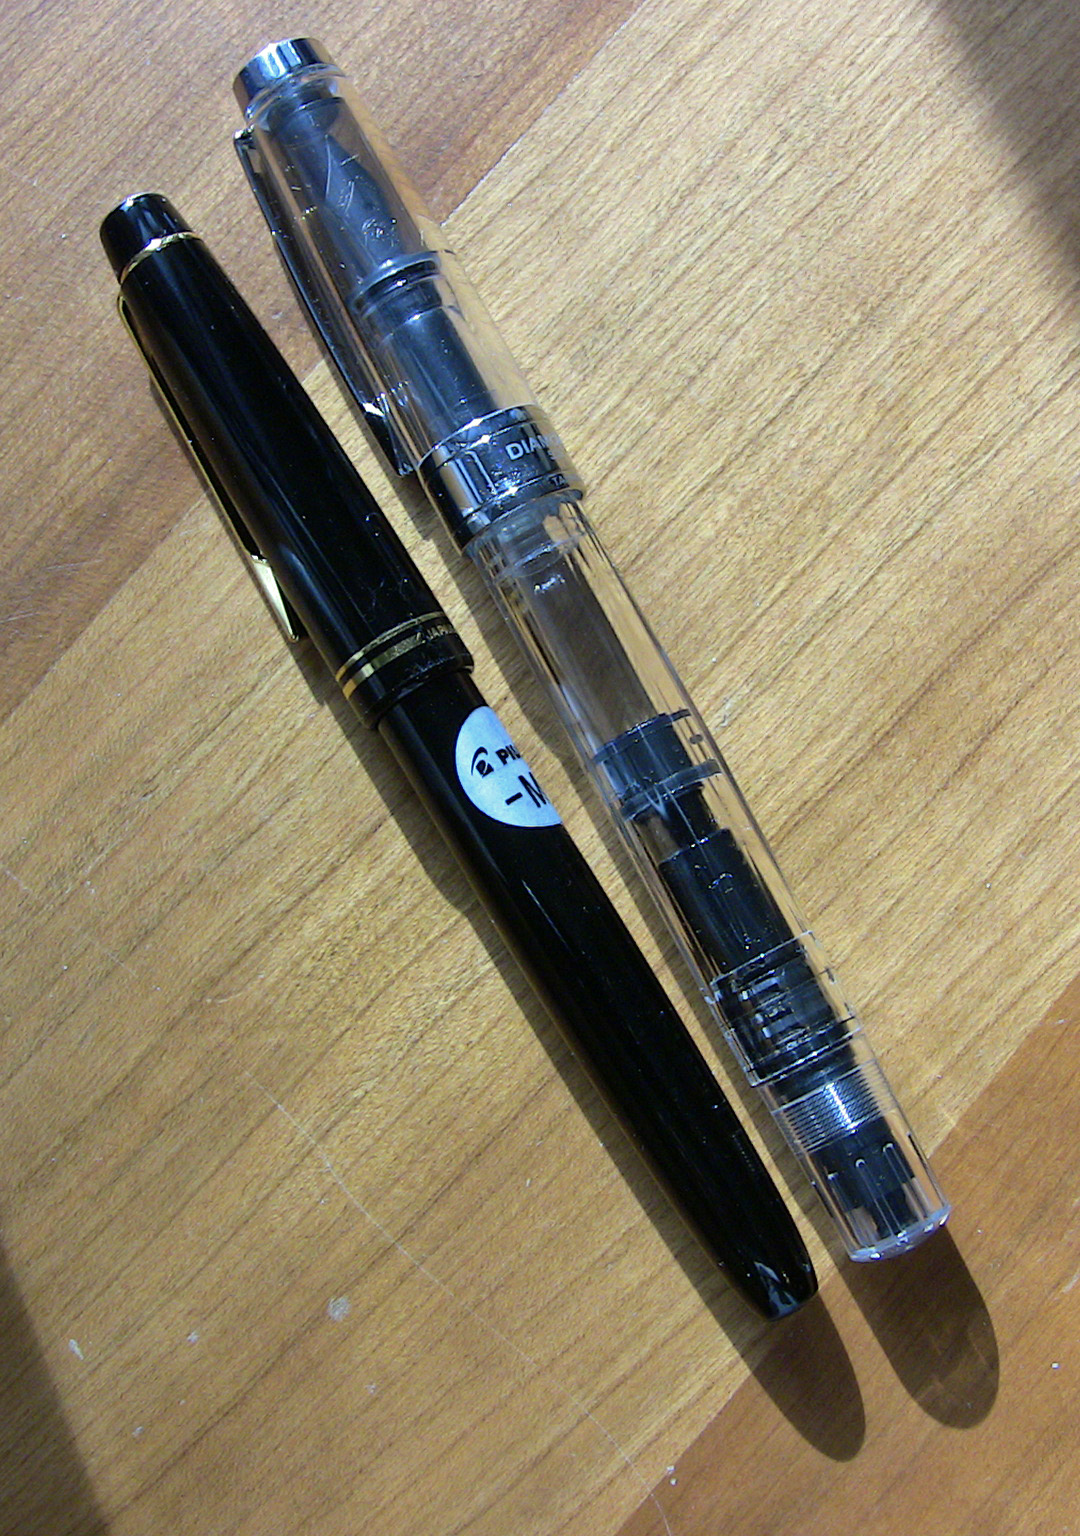 Size comparison between Pilot 78G and TWSBI 530